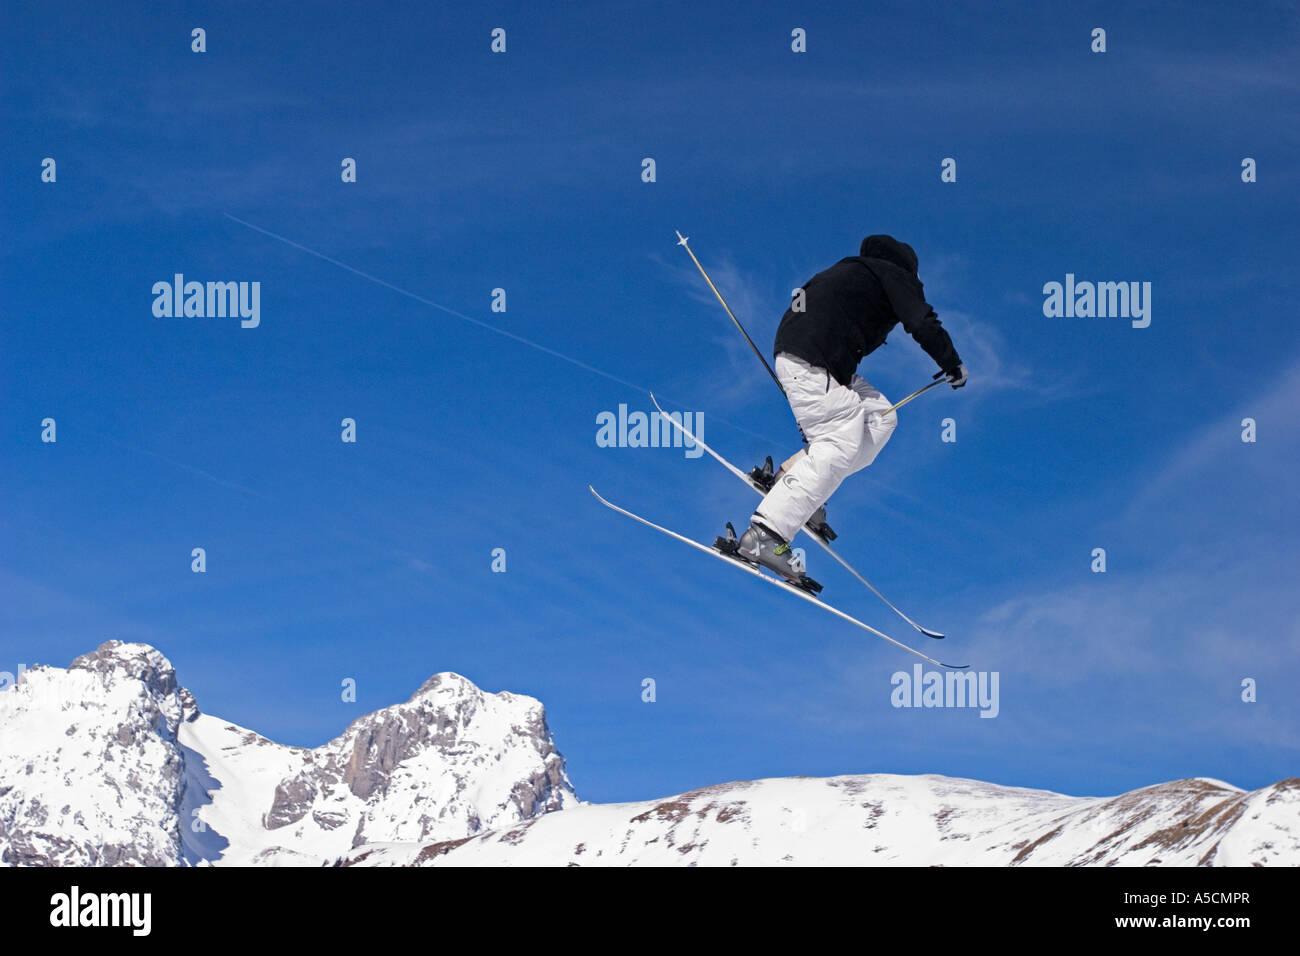 man enjoying freeride surf in winter in grand bornand alps french france station - Stock Image